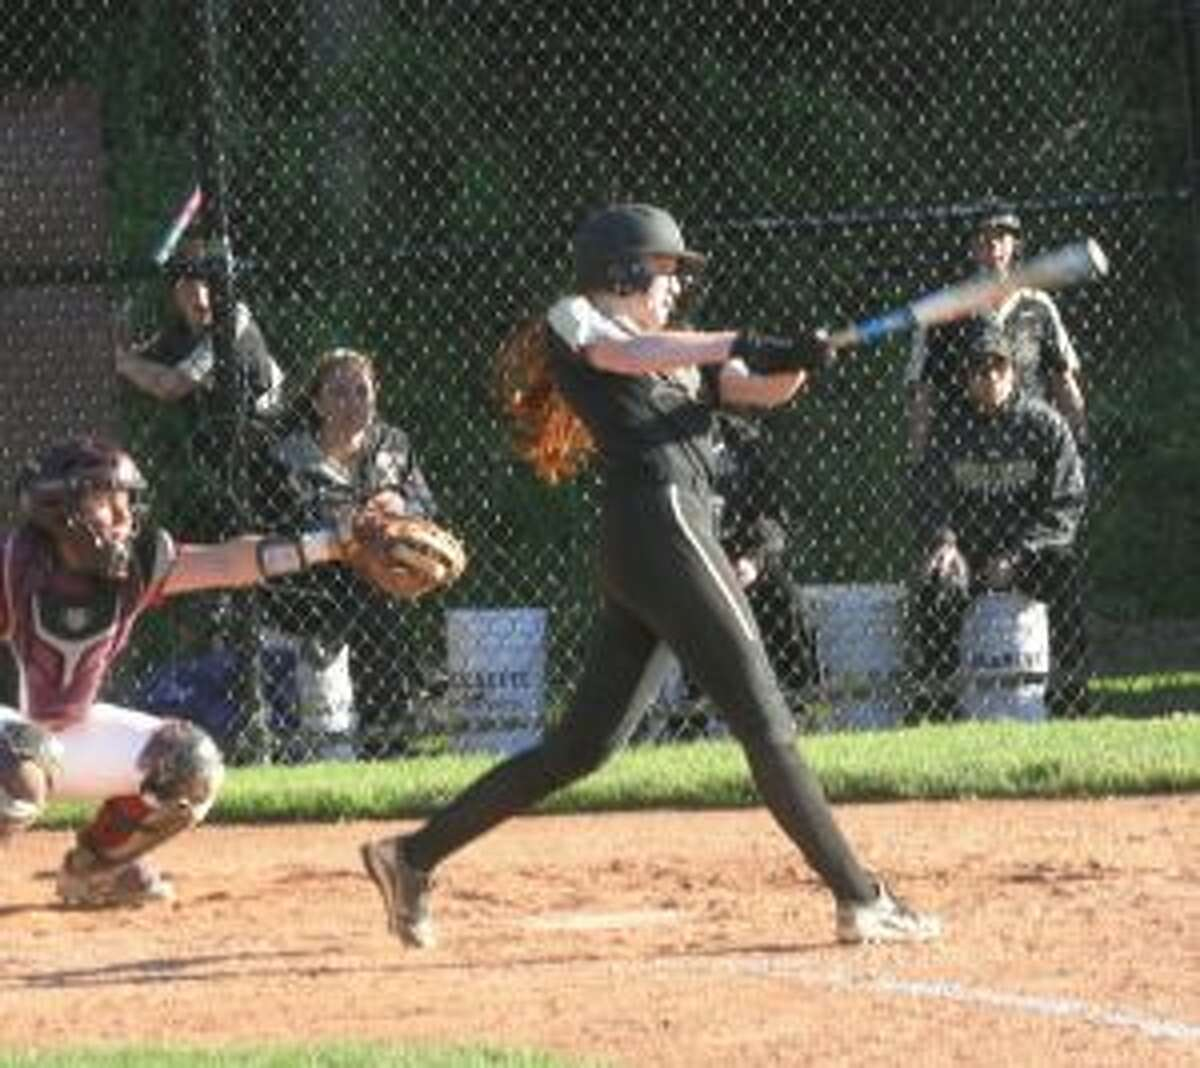 Taylor Brown had three hits for Trumbull.